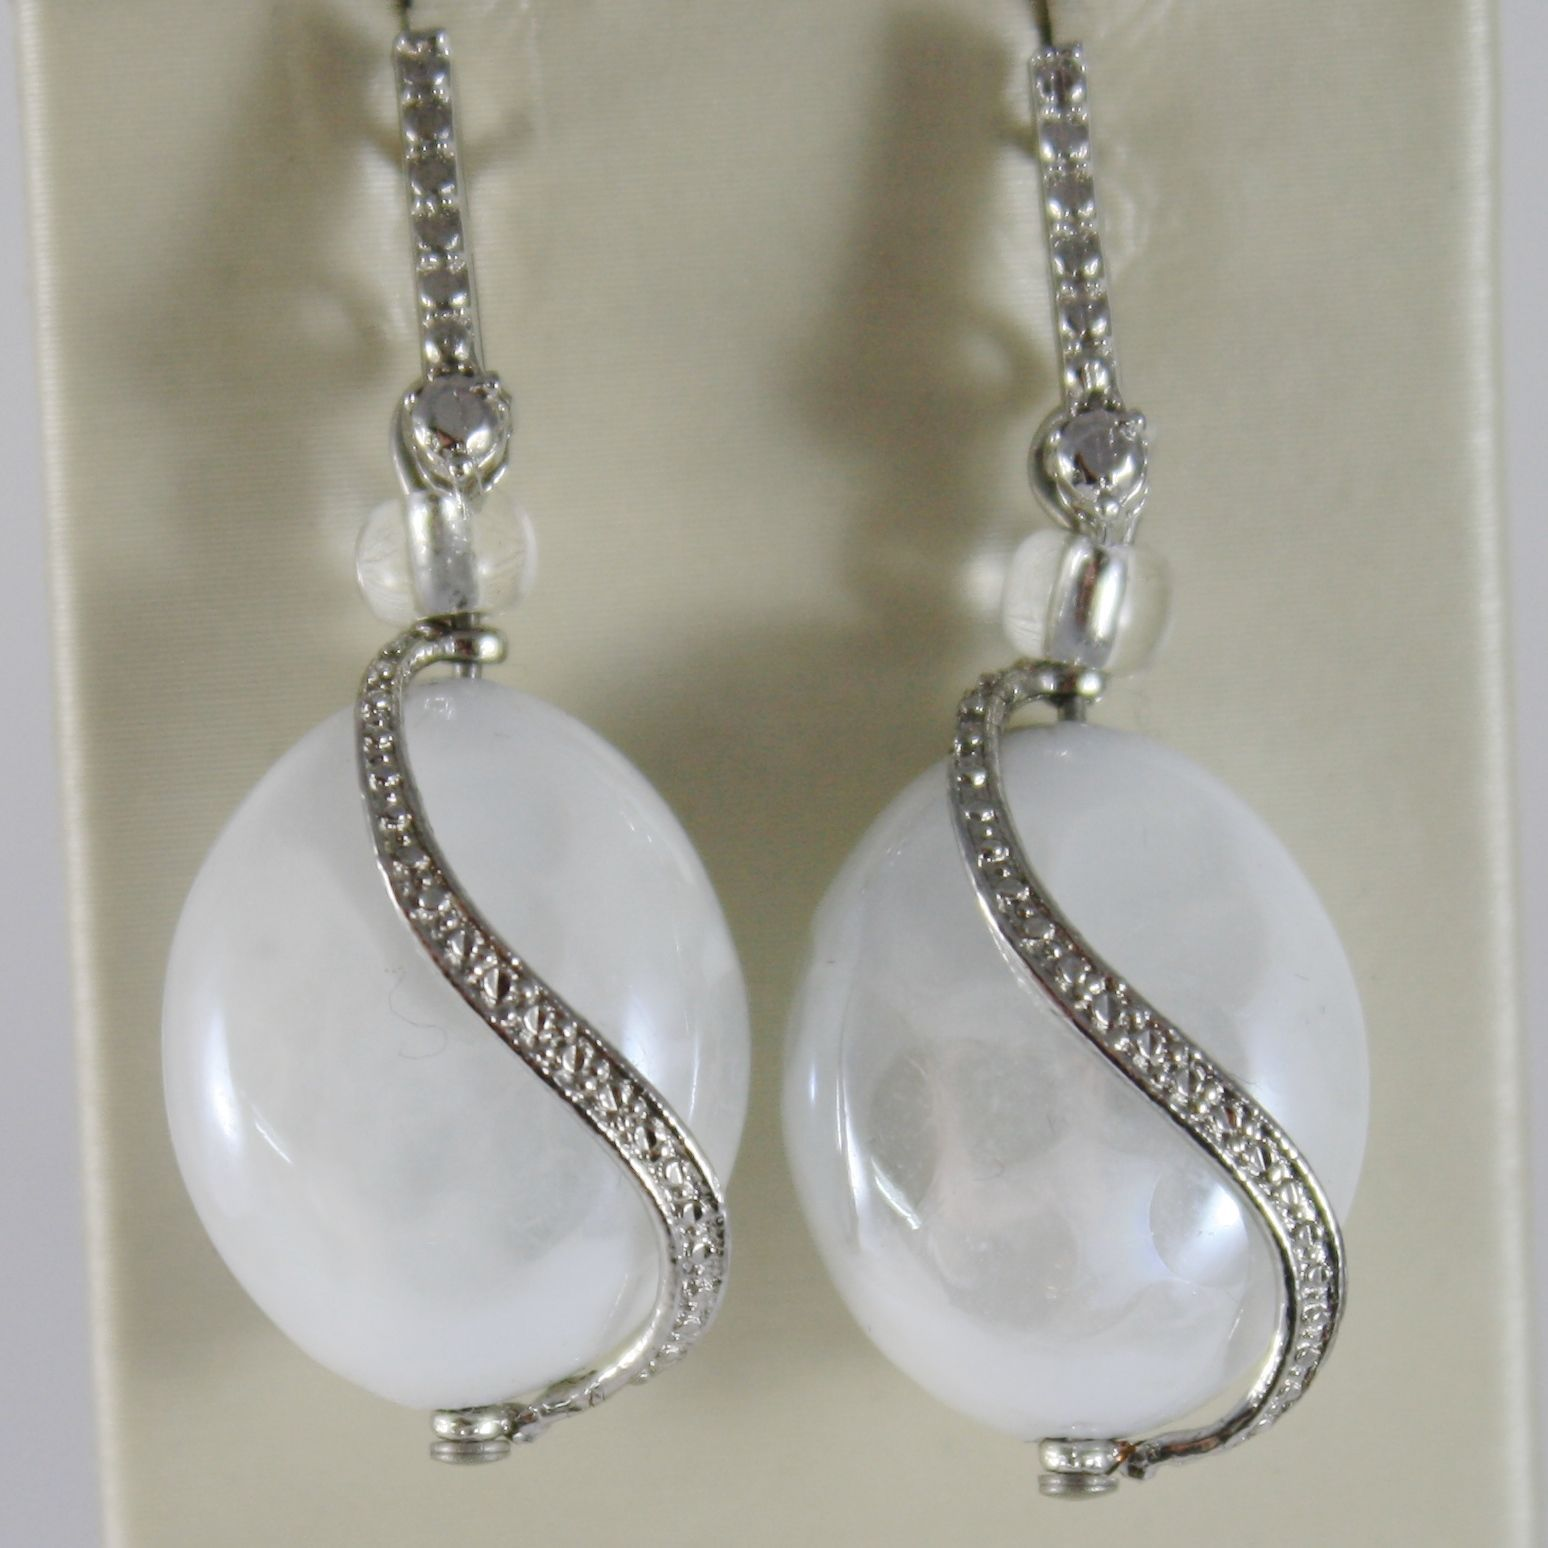 ANTICA MURRINA VENEZIA PENDANT EARRINGS, WHITE LEOPARD EFFECT WAVE OVAL OVALS